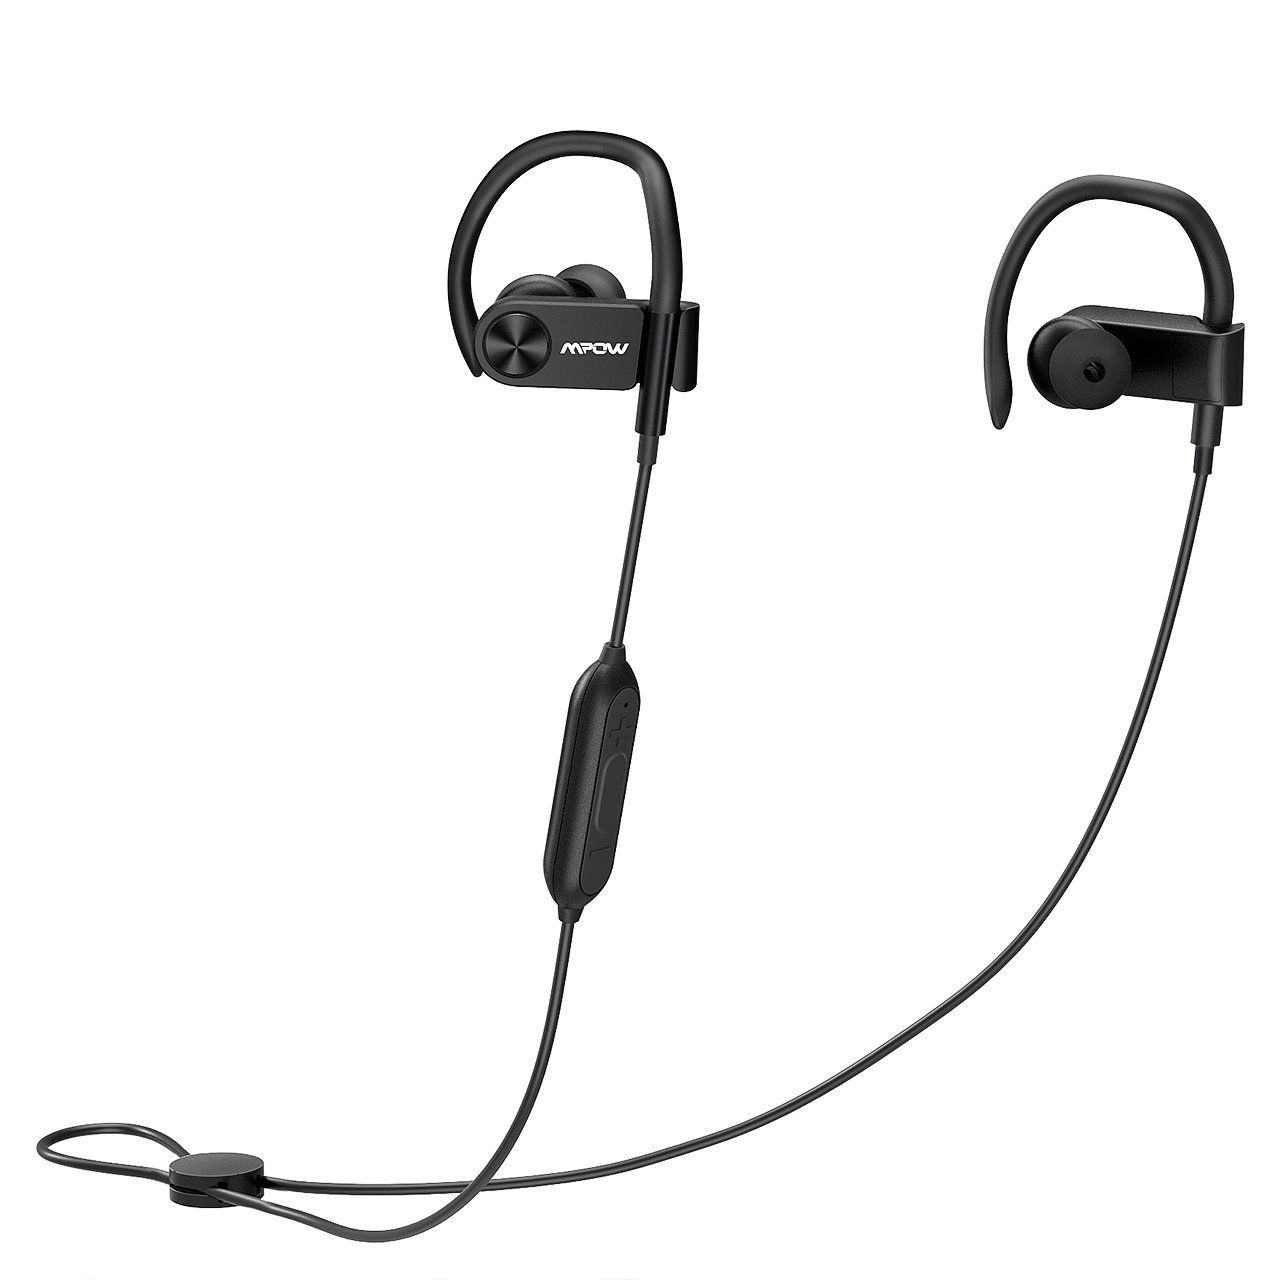 Mpow D2 Bluetooth Headphones up to 16 Hours Playback, Ipx7